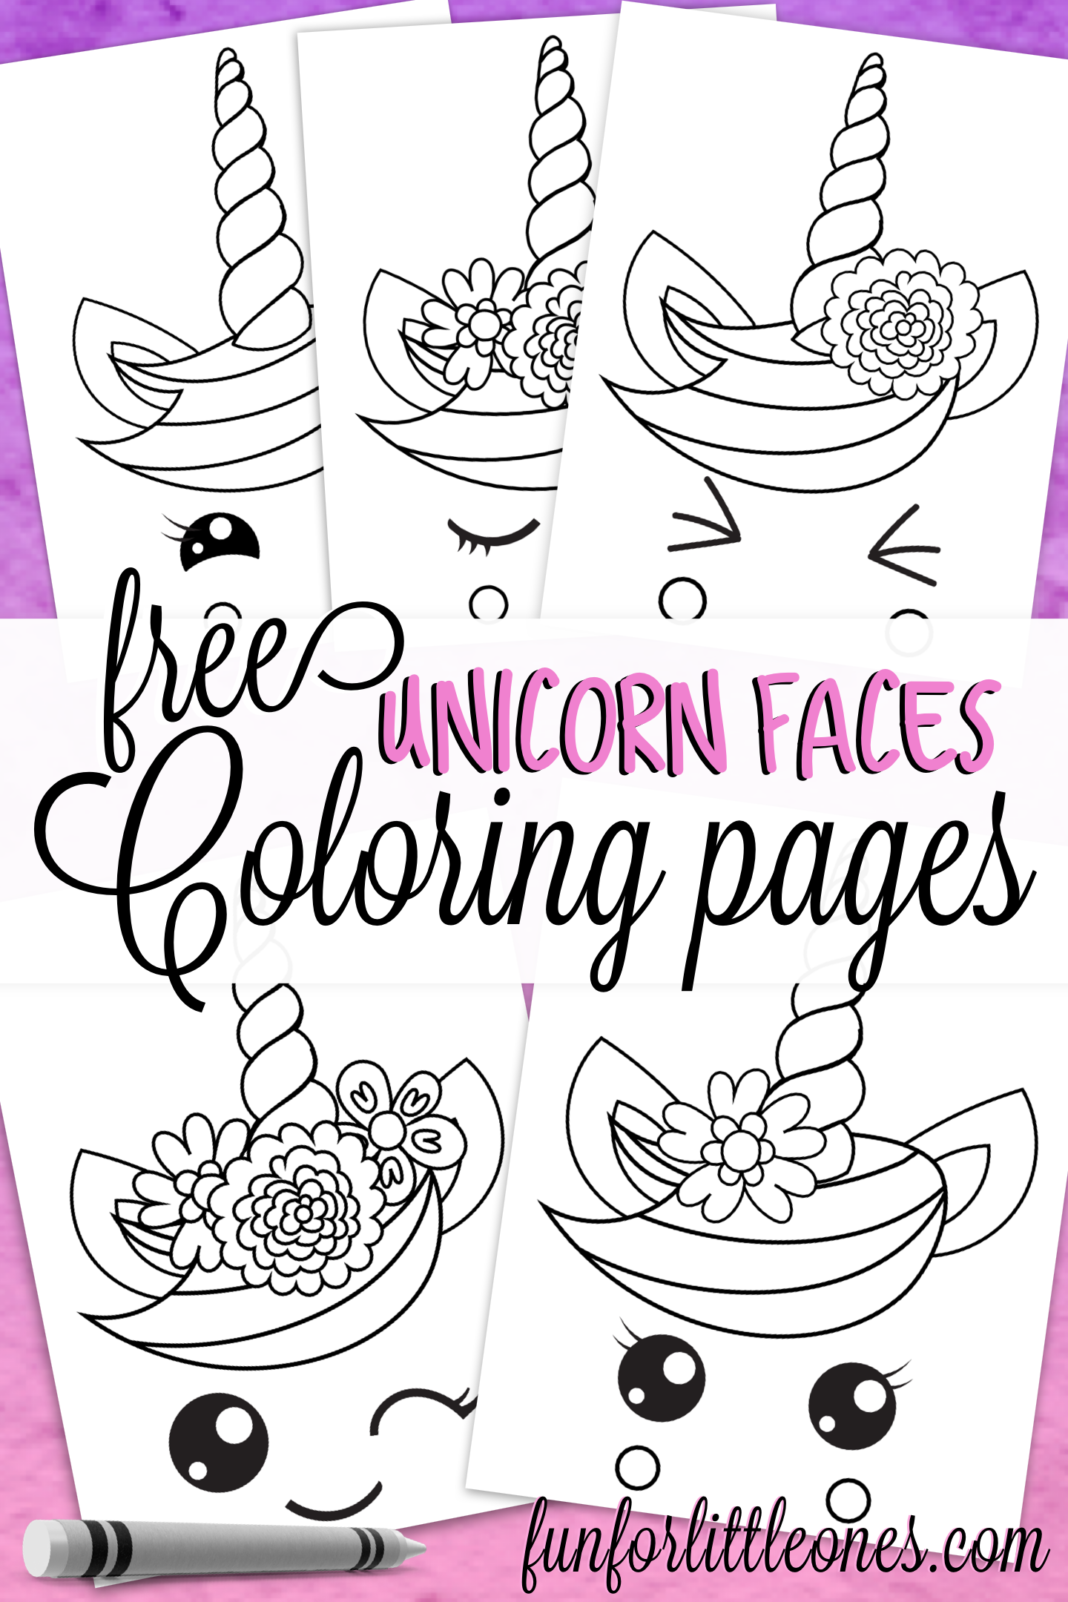 Unicorn Faces Coloring Pages For Kids Unicorn Face Coloring Pages Unicorn Coloring Pages